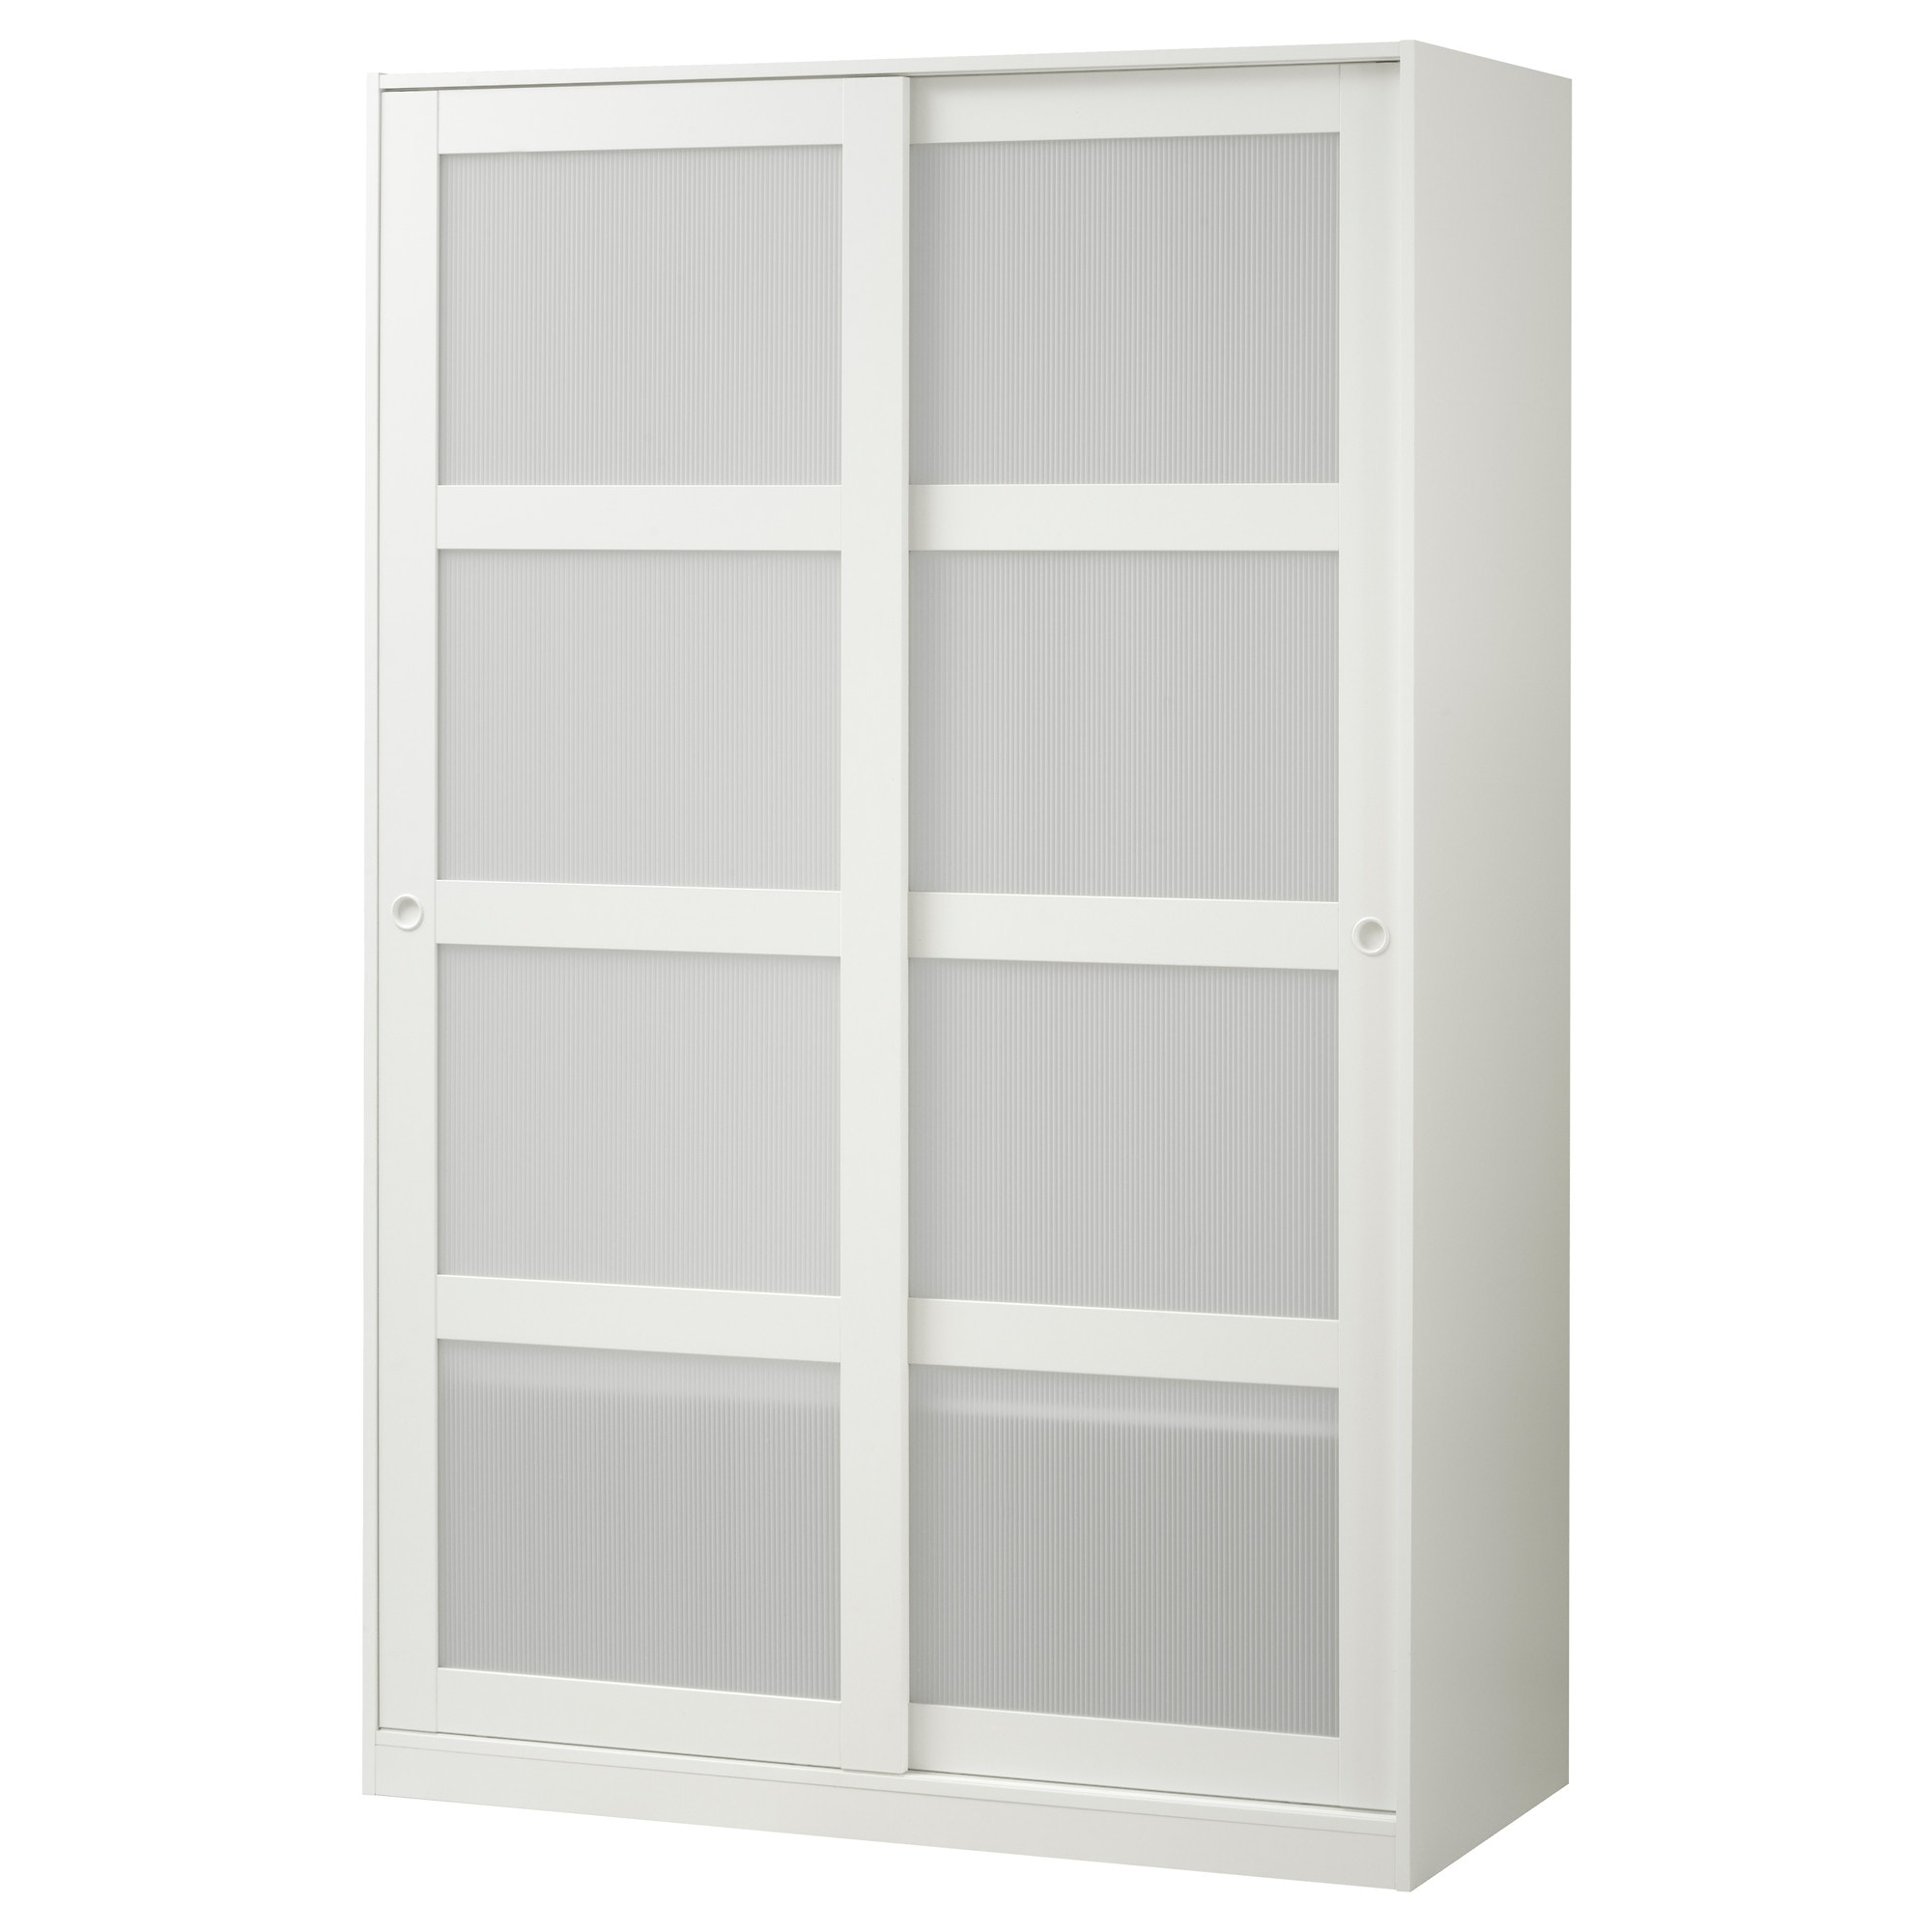 KVIKNE Wardrobe With Sliding Doors IKEA - Ikea wardrobe